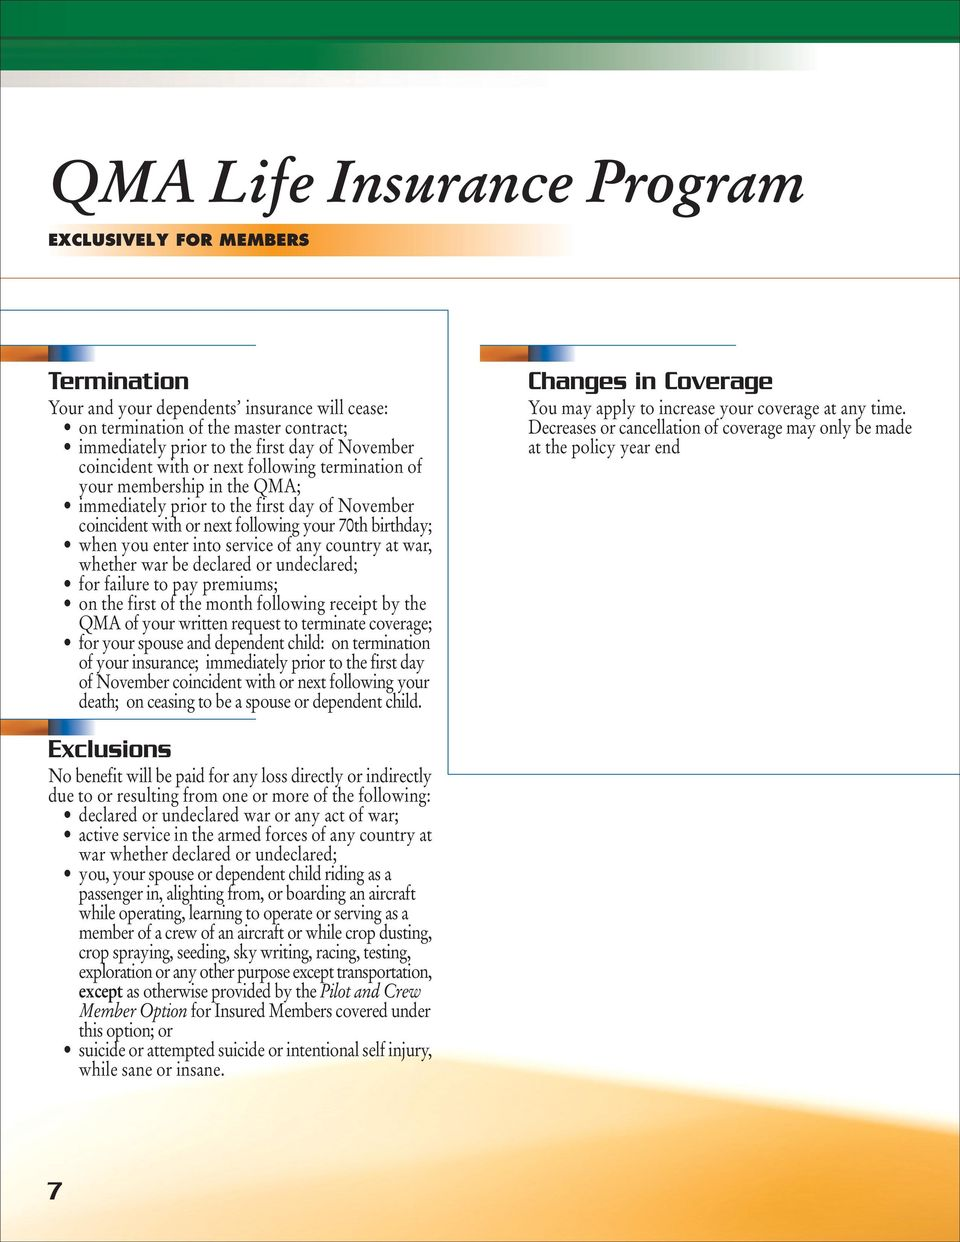 QMA of your written request to terminate coverage; for your spouse and dependent child: on termination of your insurance; immediately prior to the first day of November coincident with or next